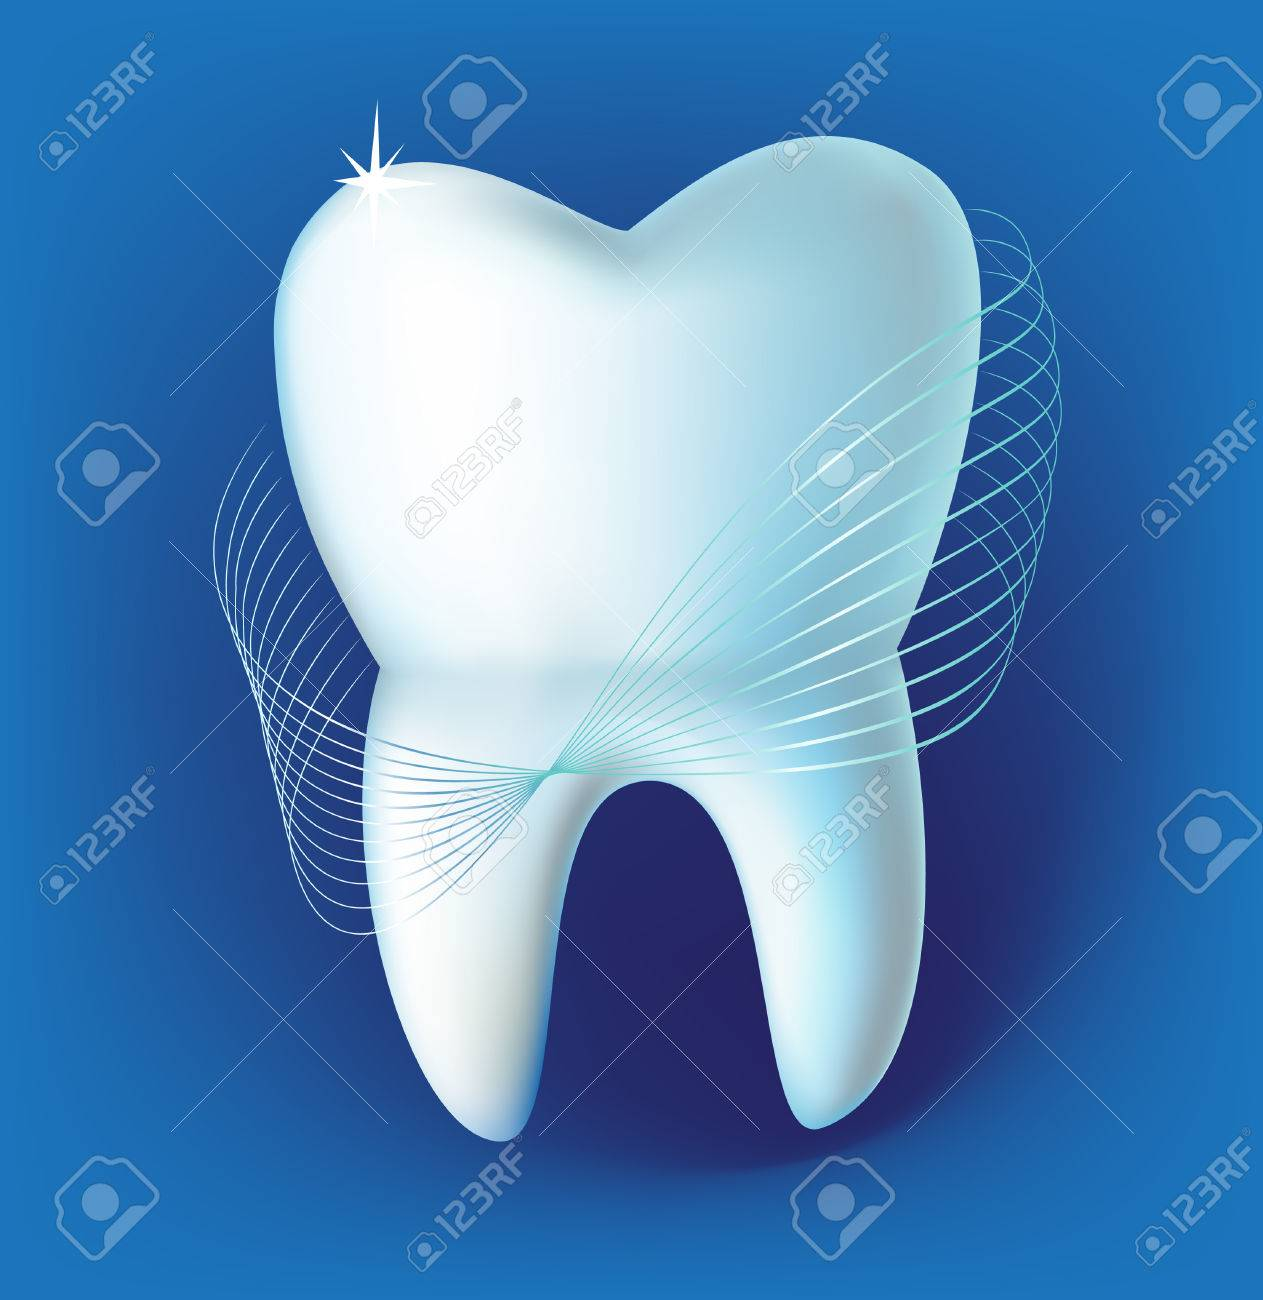 Tooth Stock Vector - 5414774